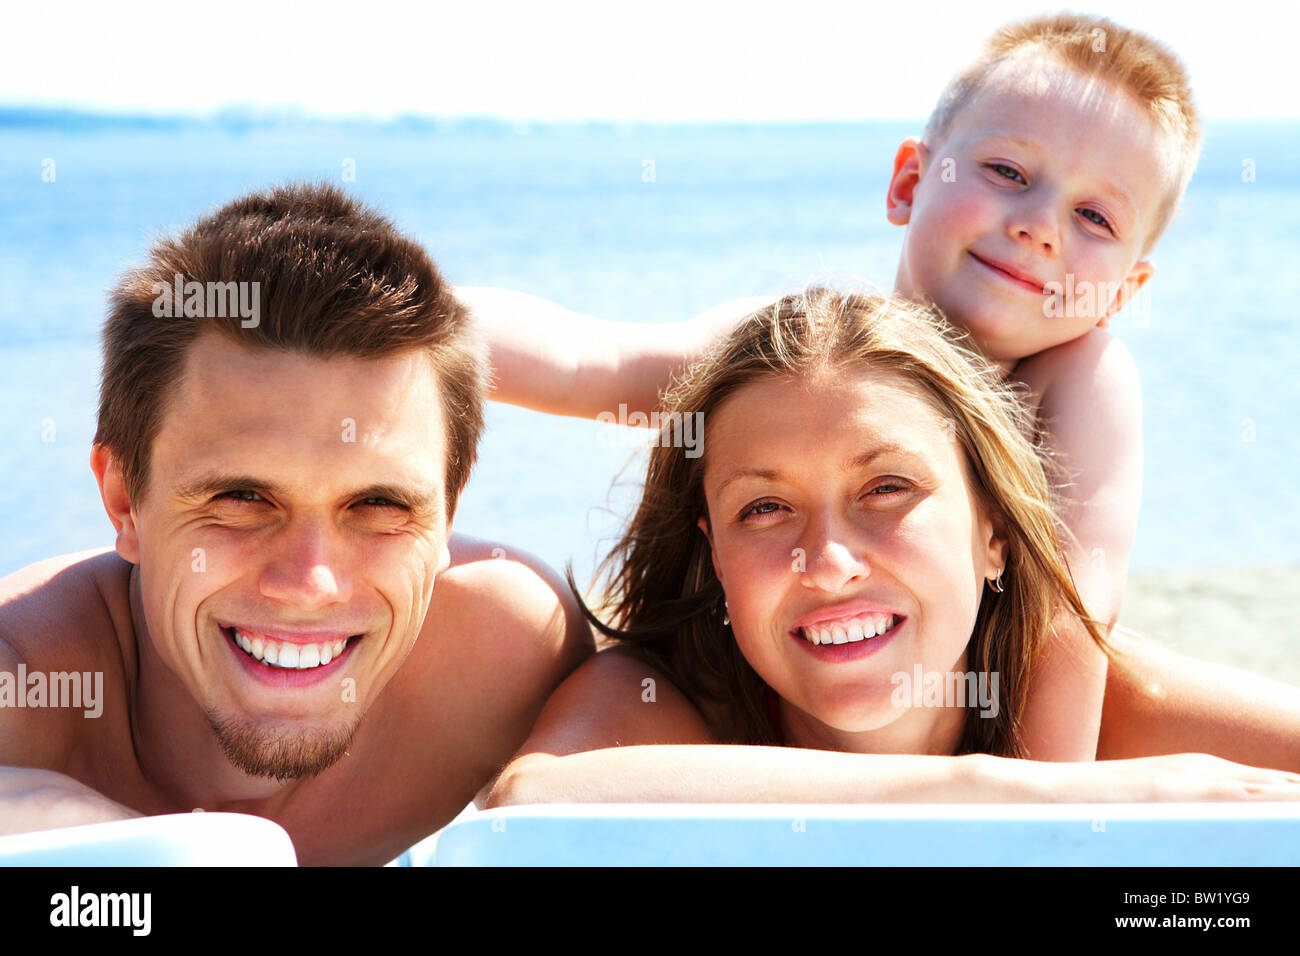 Photo of smiling family looking at camera while sunbathing - Stock Image